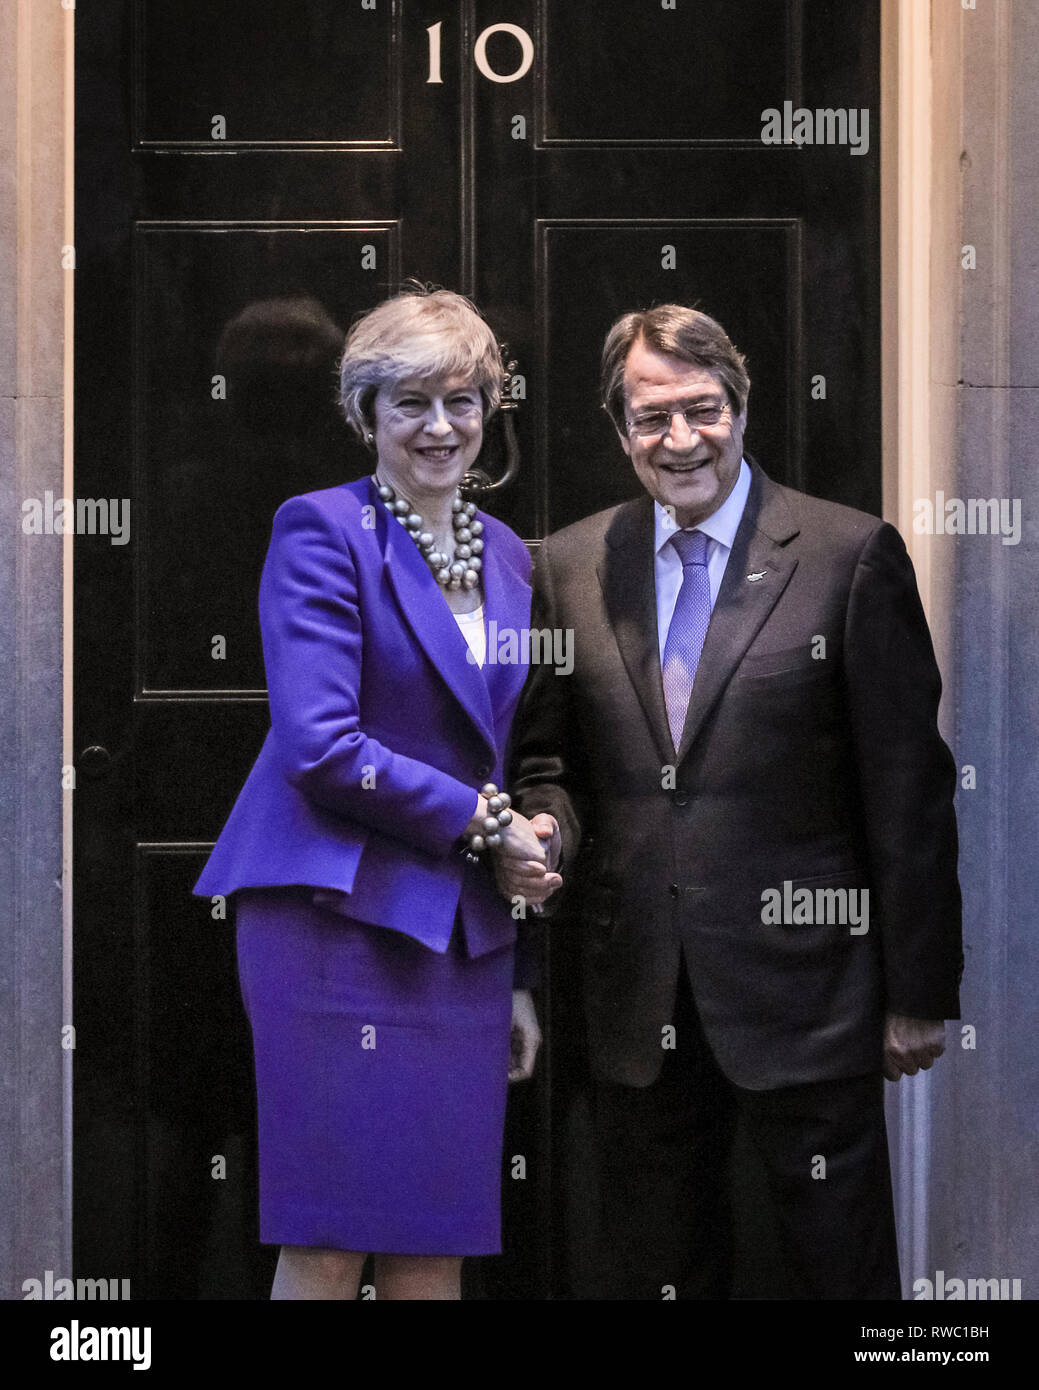 Downing Street, Westminster, London, UK. 5th Mar, 2019. British Prime Minister Theresa May welcomes Cypriot President Nicos Anastasiades in Downing Street for talks. Credit: Imageplotter/Alamy Live News - Stock Image